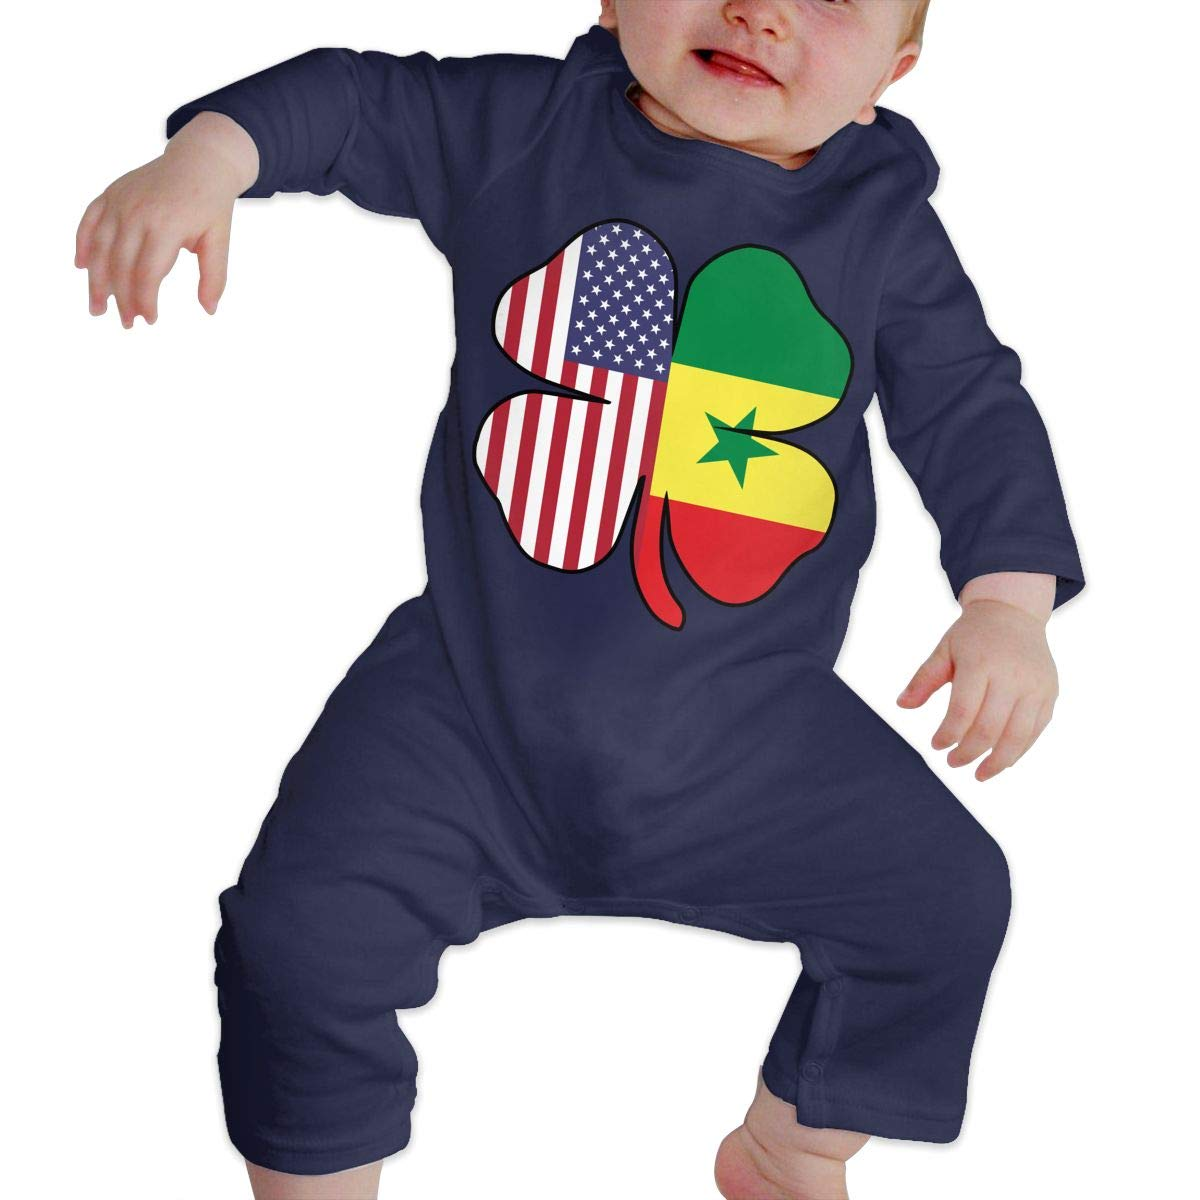 Mri-le1 Toddler Baby Boy Girl Long Sleeved Coveralls American Senegal Flag Shamrock Toddler Jumpsuit